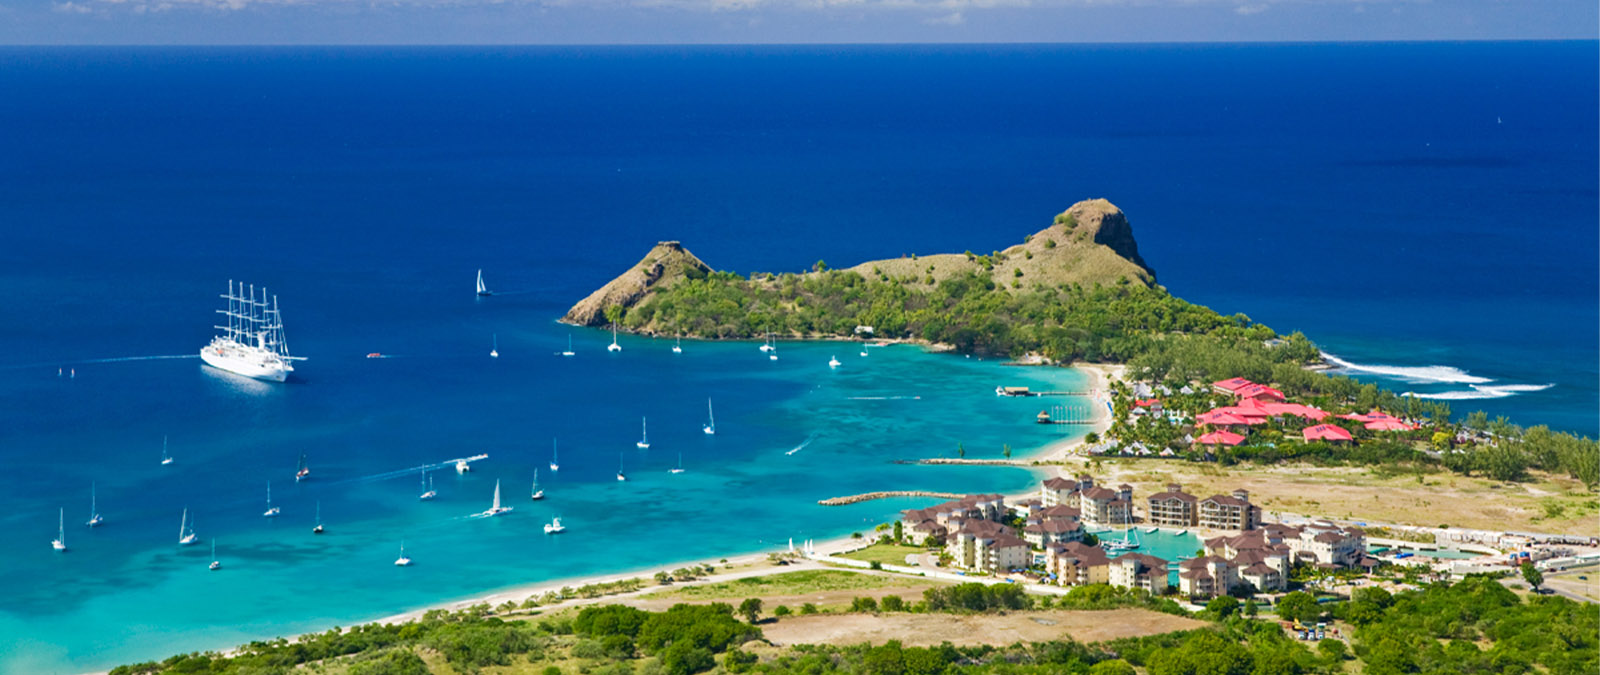 Saint Lucia captivates anyone who sets foot on its coastline. Always evocative, it welcomes visitors with its soothing waves, warm beaches, and hospitable people.